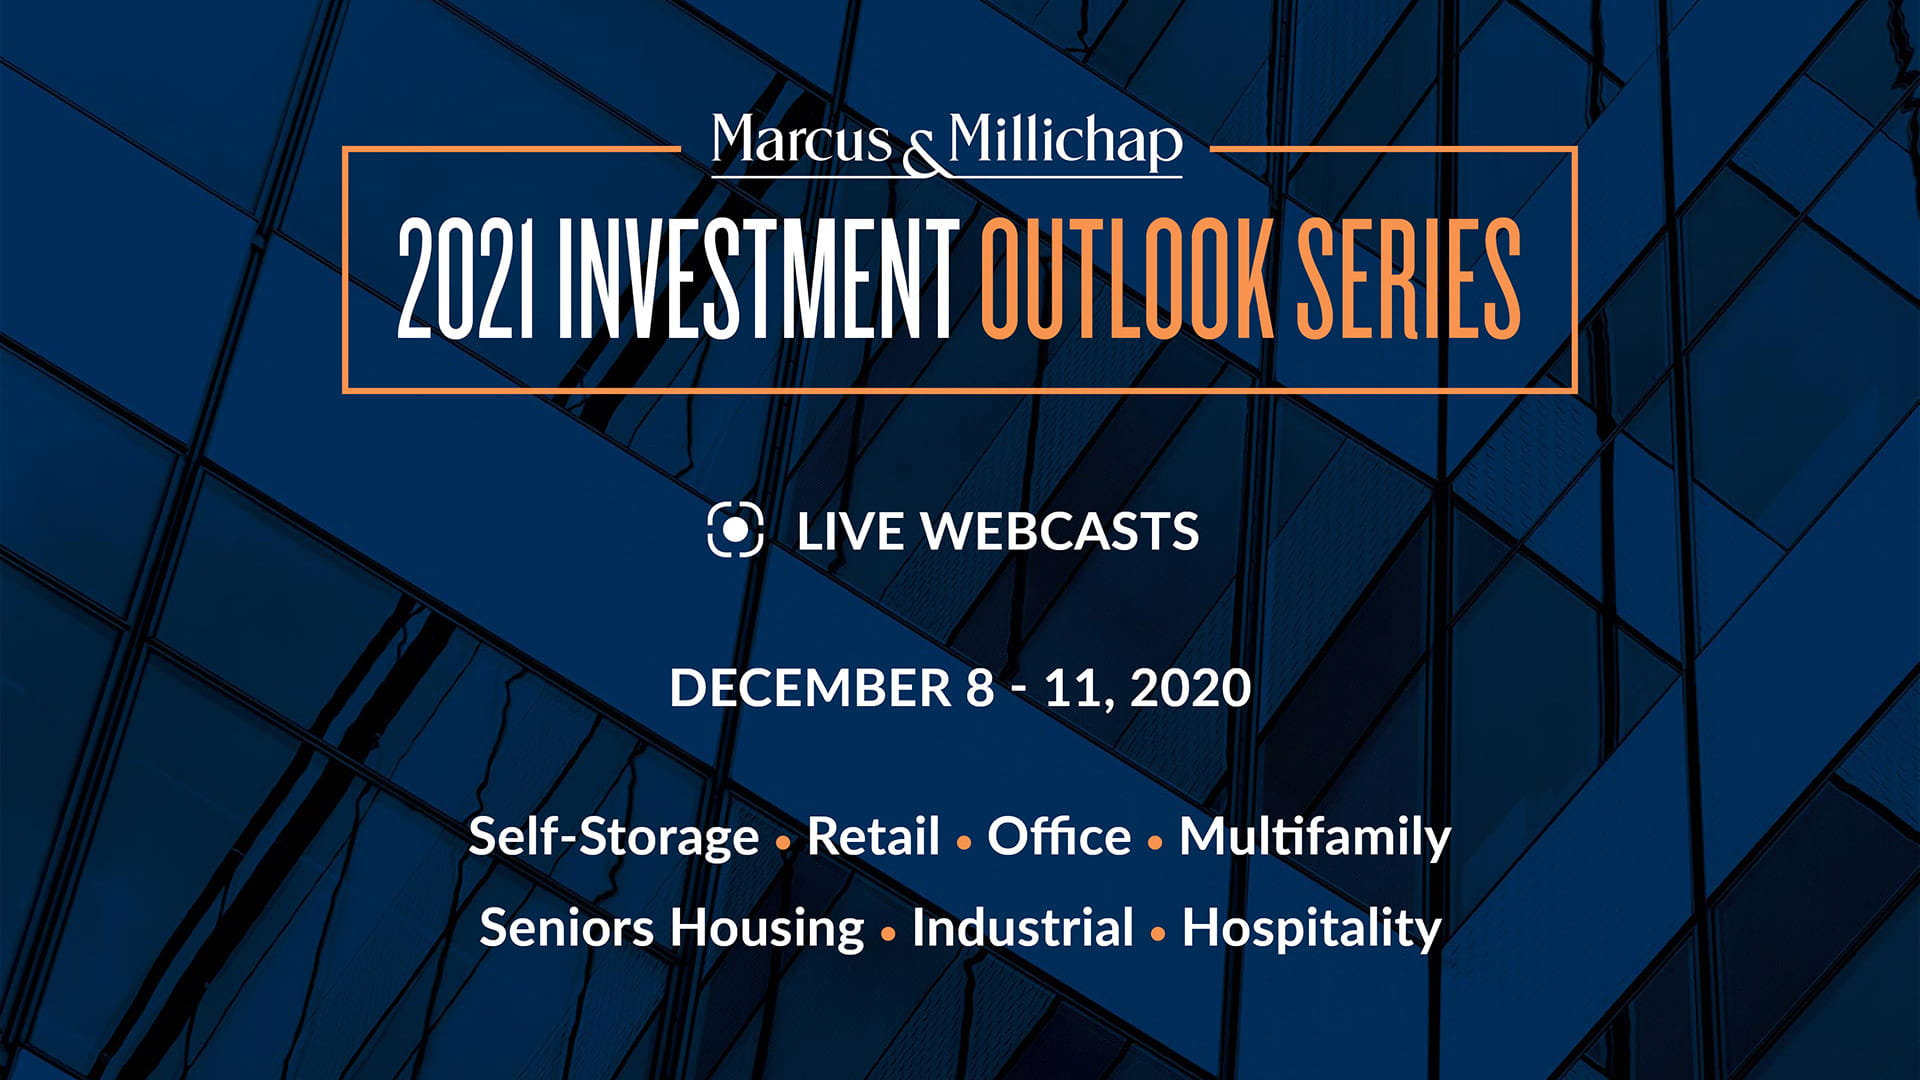 2021 Investment Outlook Series